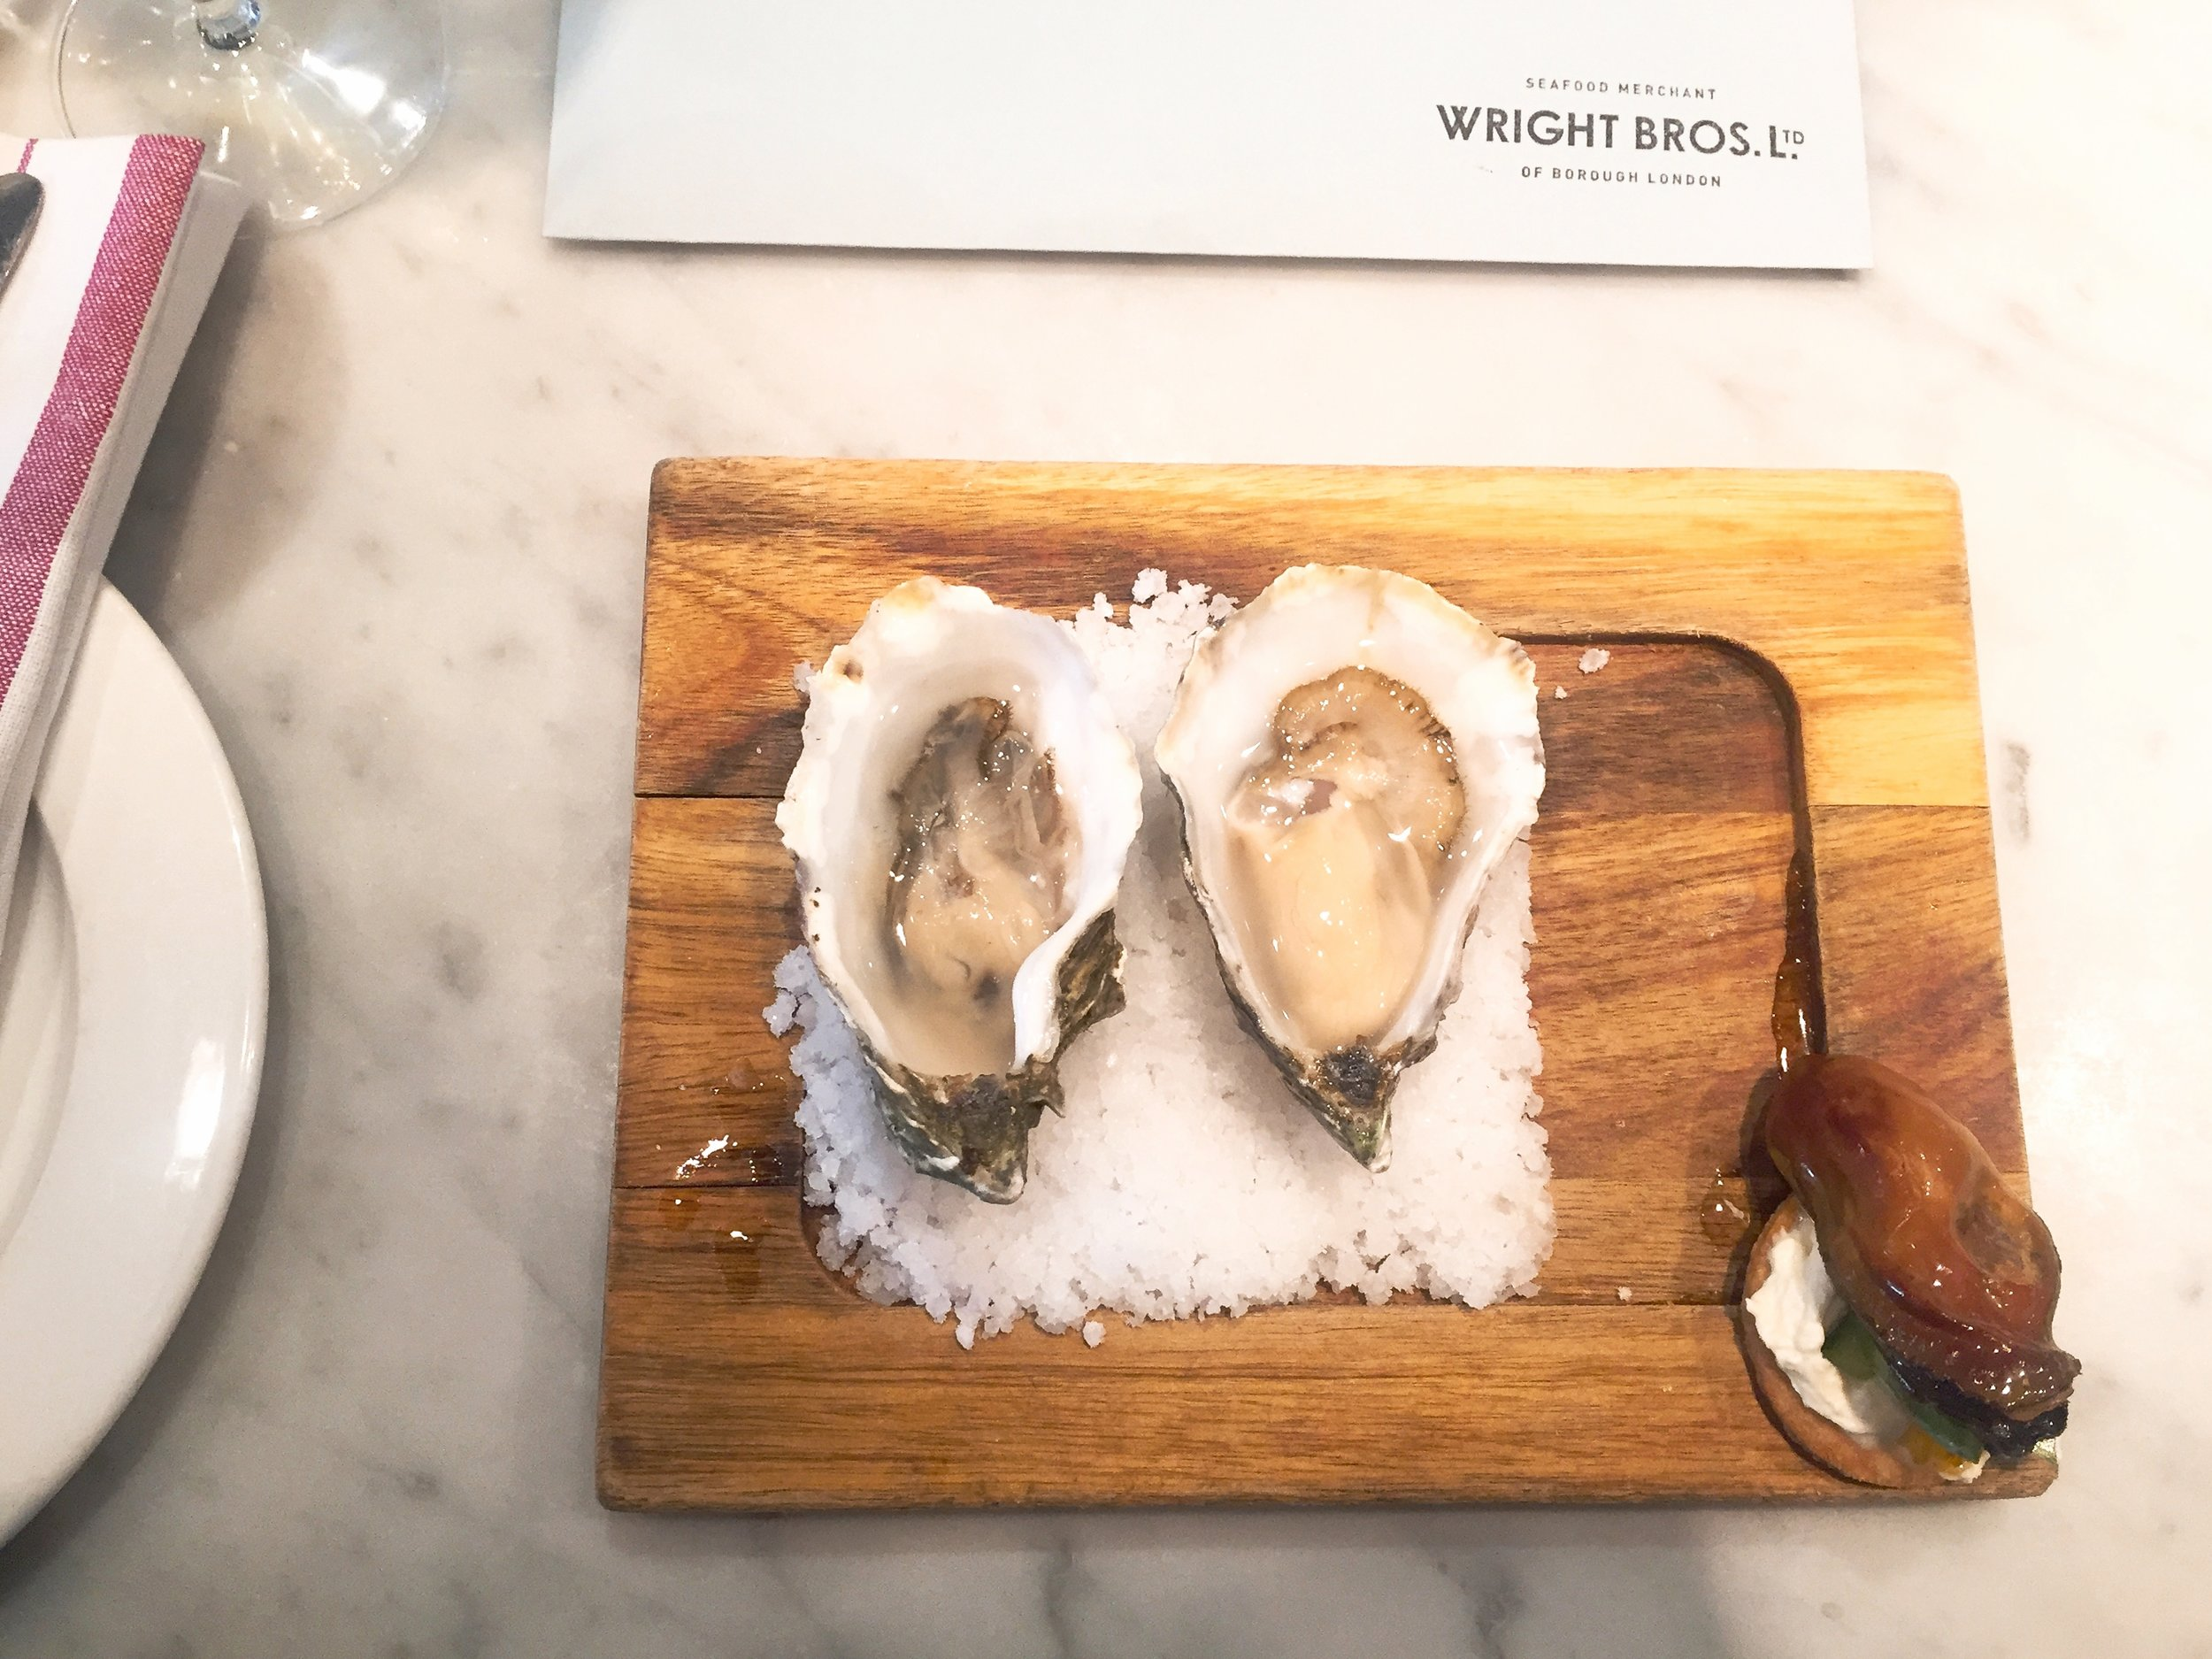 Naked oysters at Wright Brothers Spitalfields